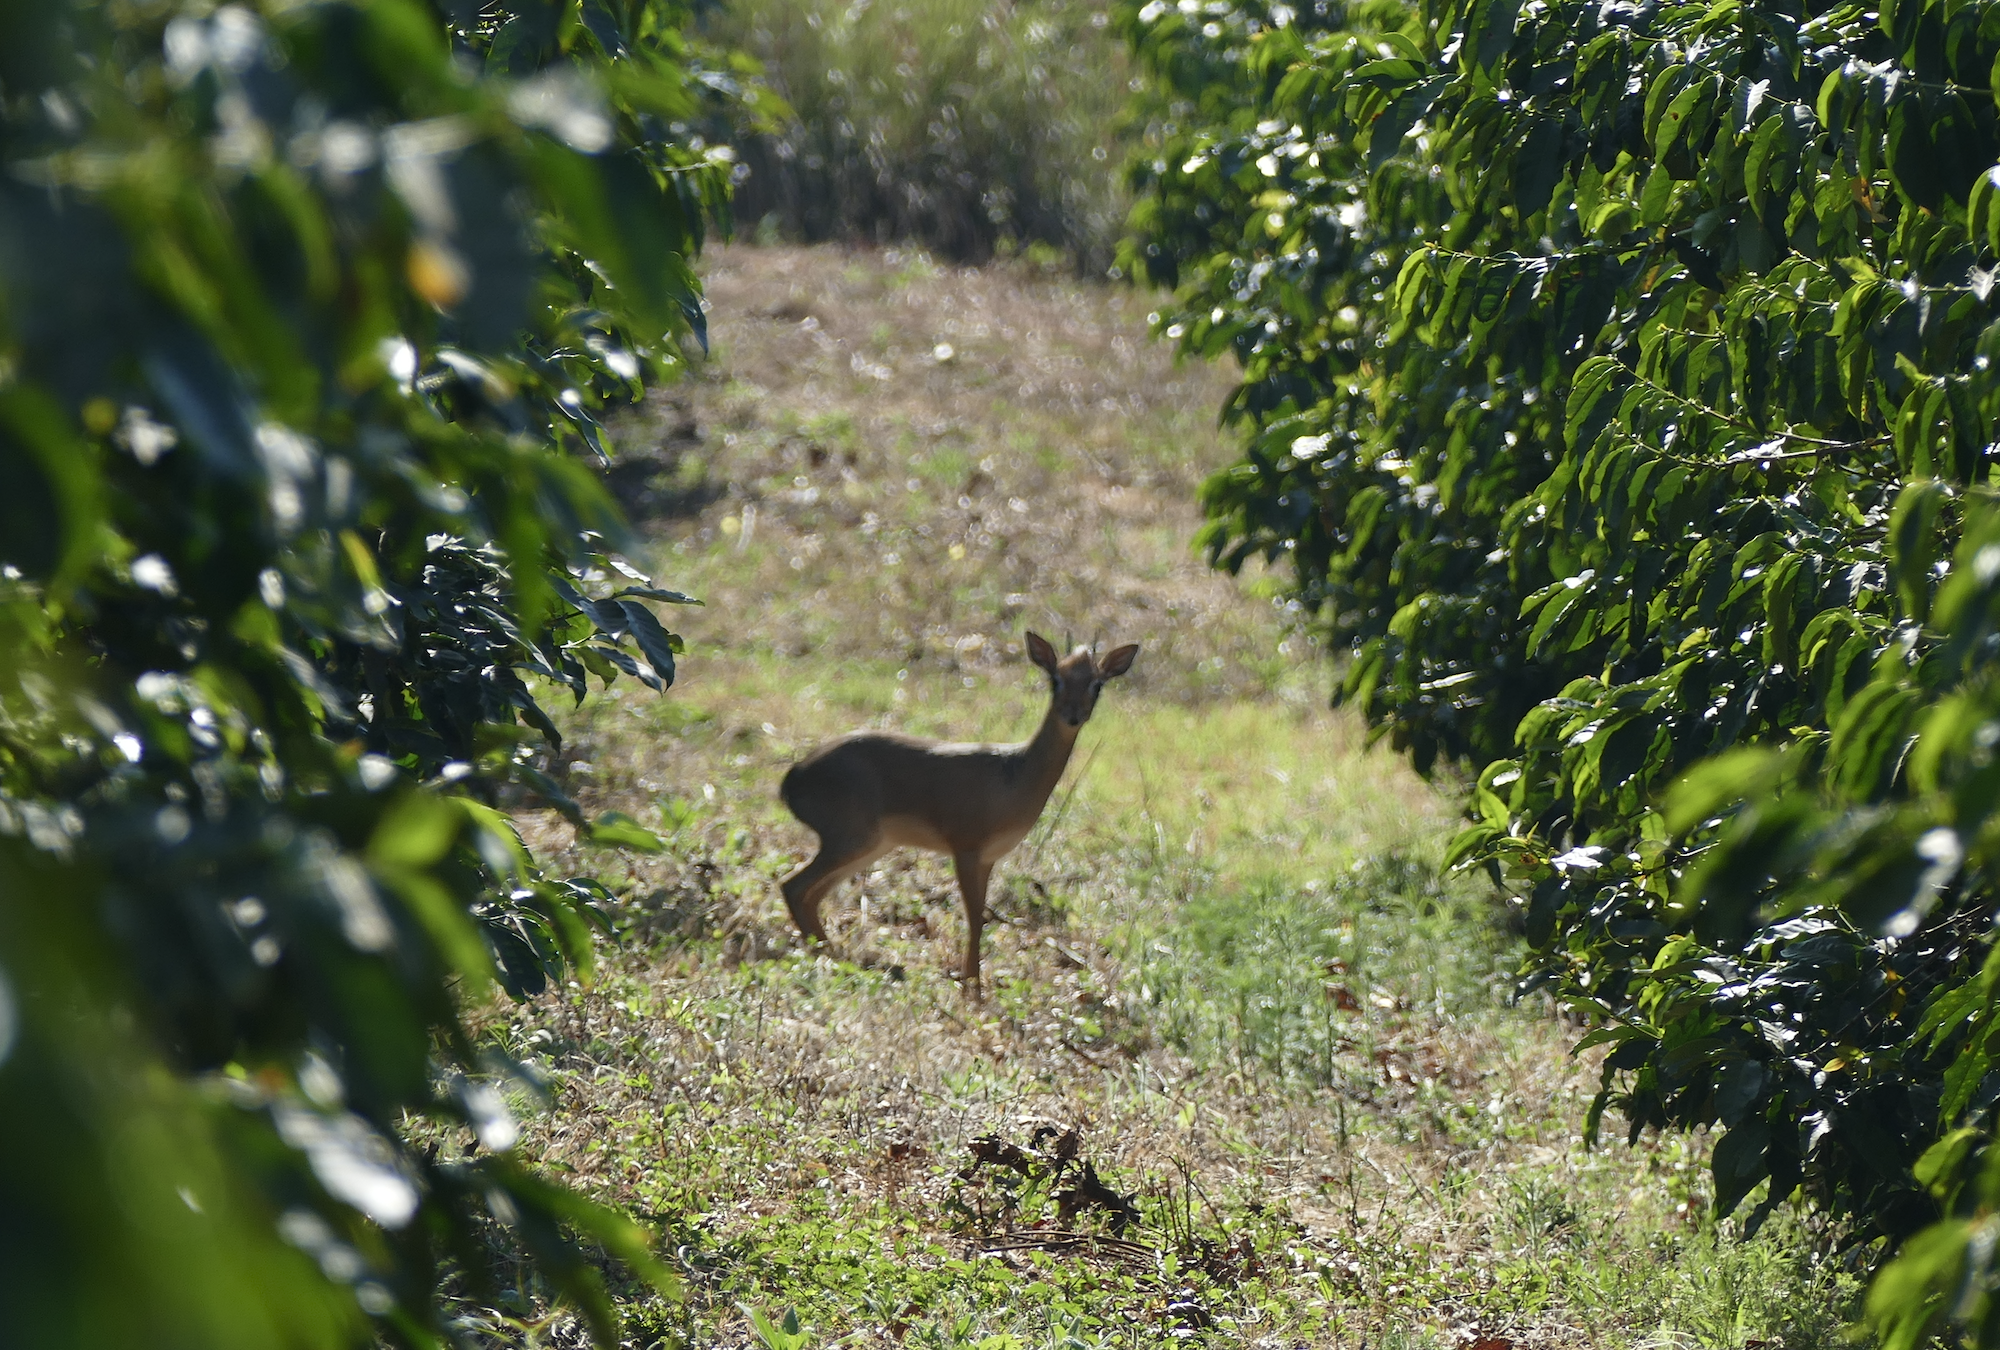 The dik-dik is a small antelope that finds shelter at the farm